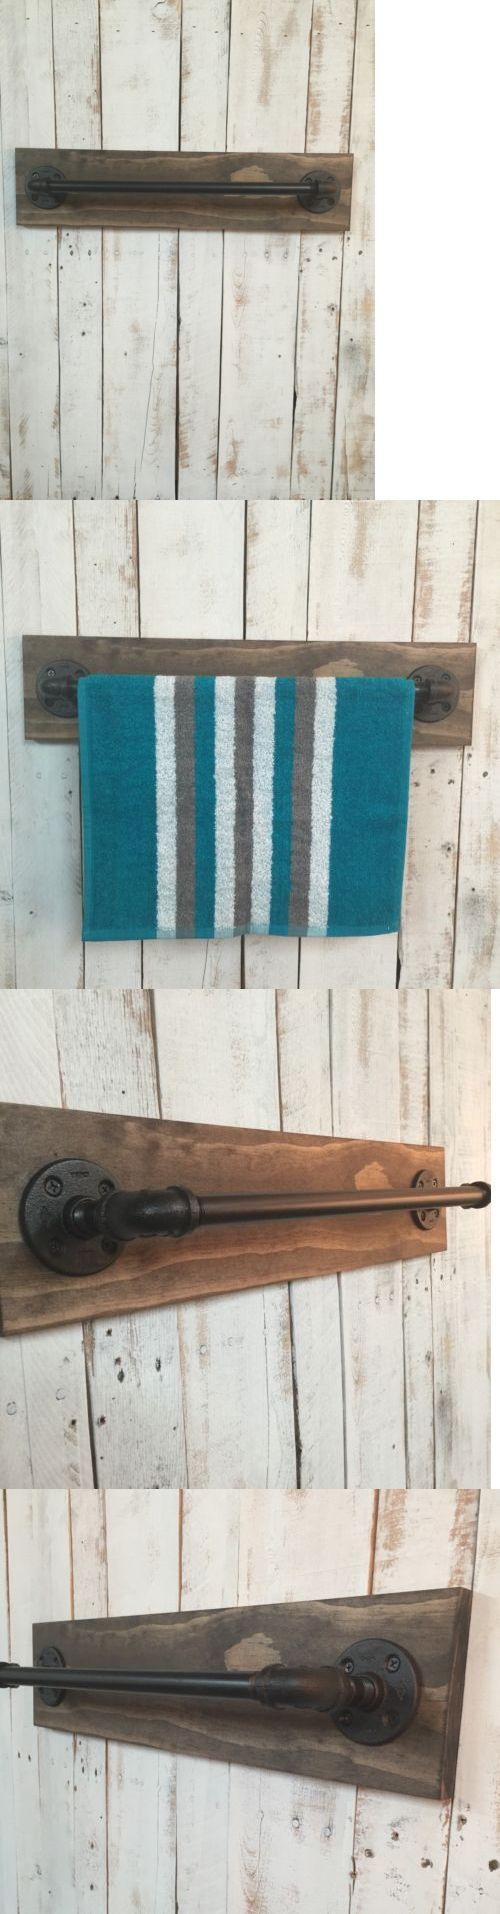 Wall Hooks and Hangers 103426: Rustic Towel Bar-Industrial Towel Bar-Wooden Towel Bar -> BUY IT NOW ONLY: $50 on eBay!